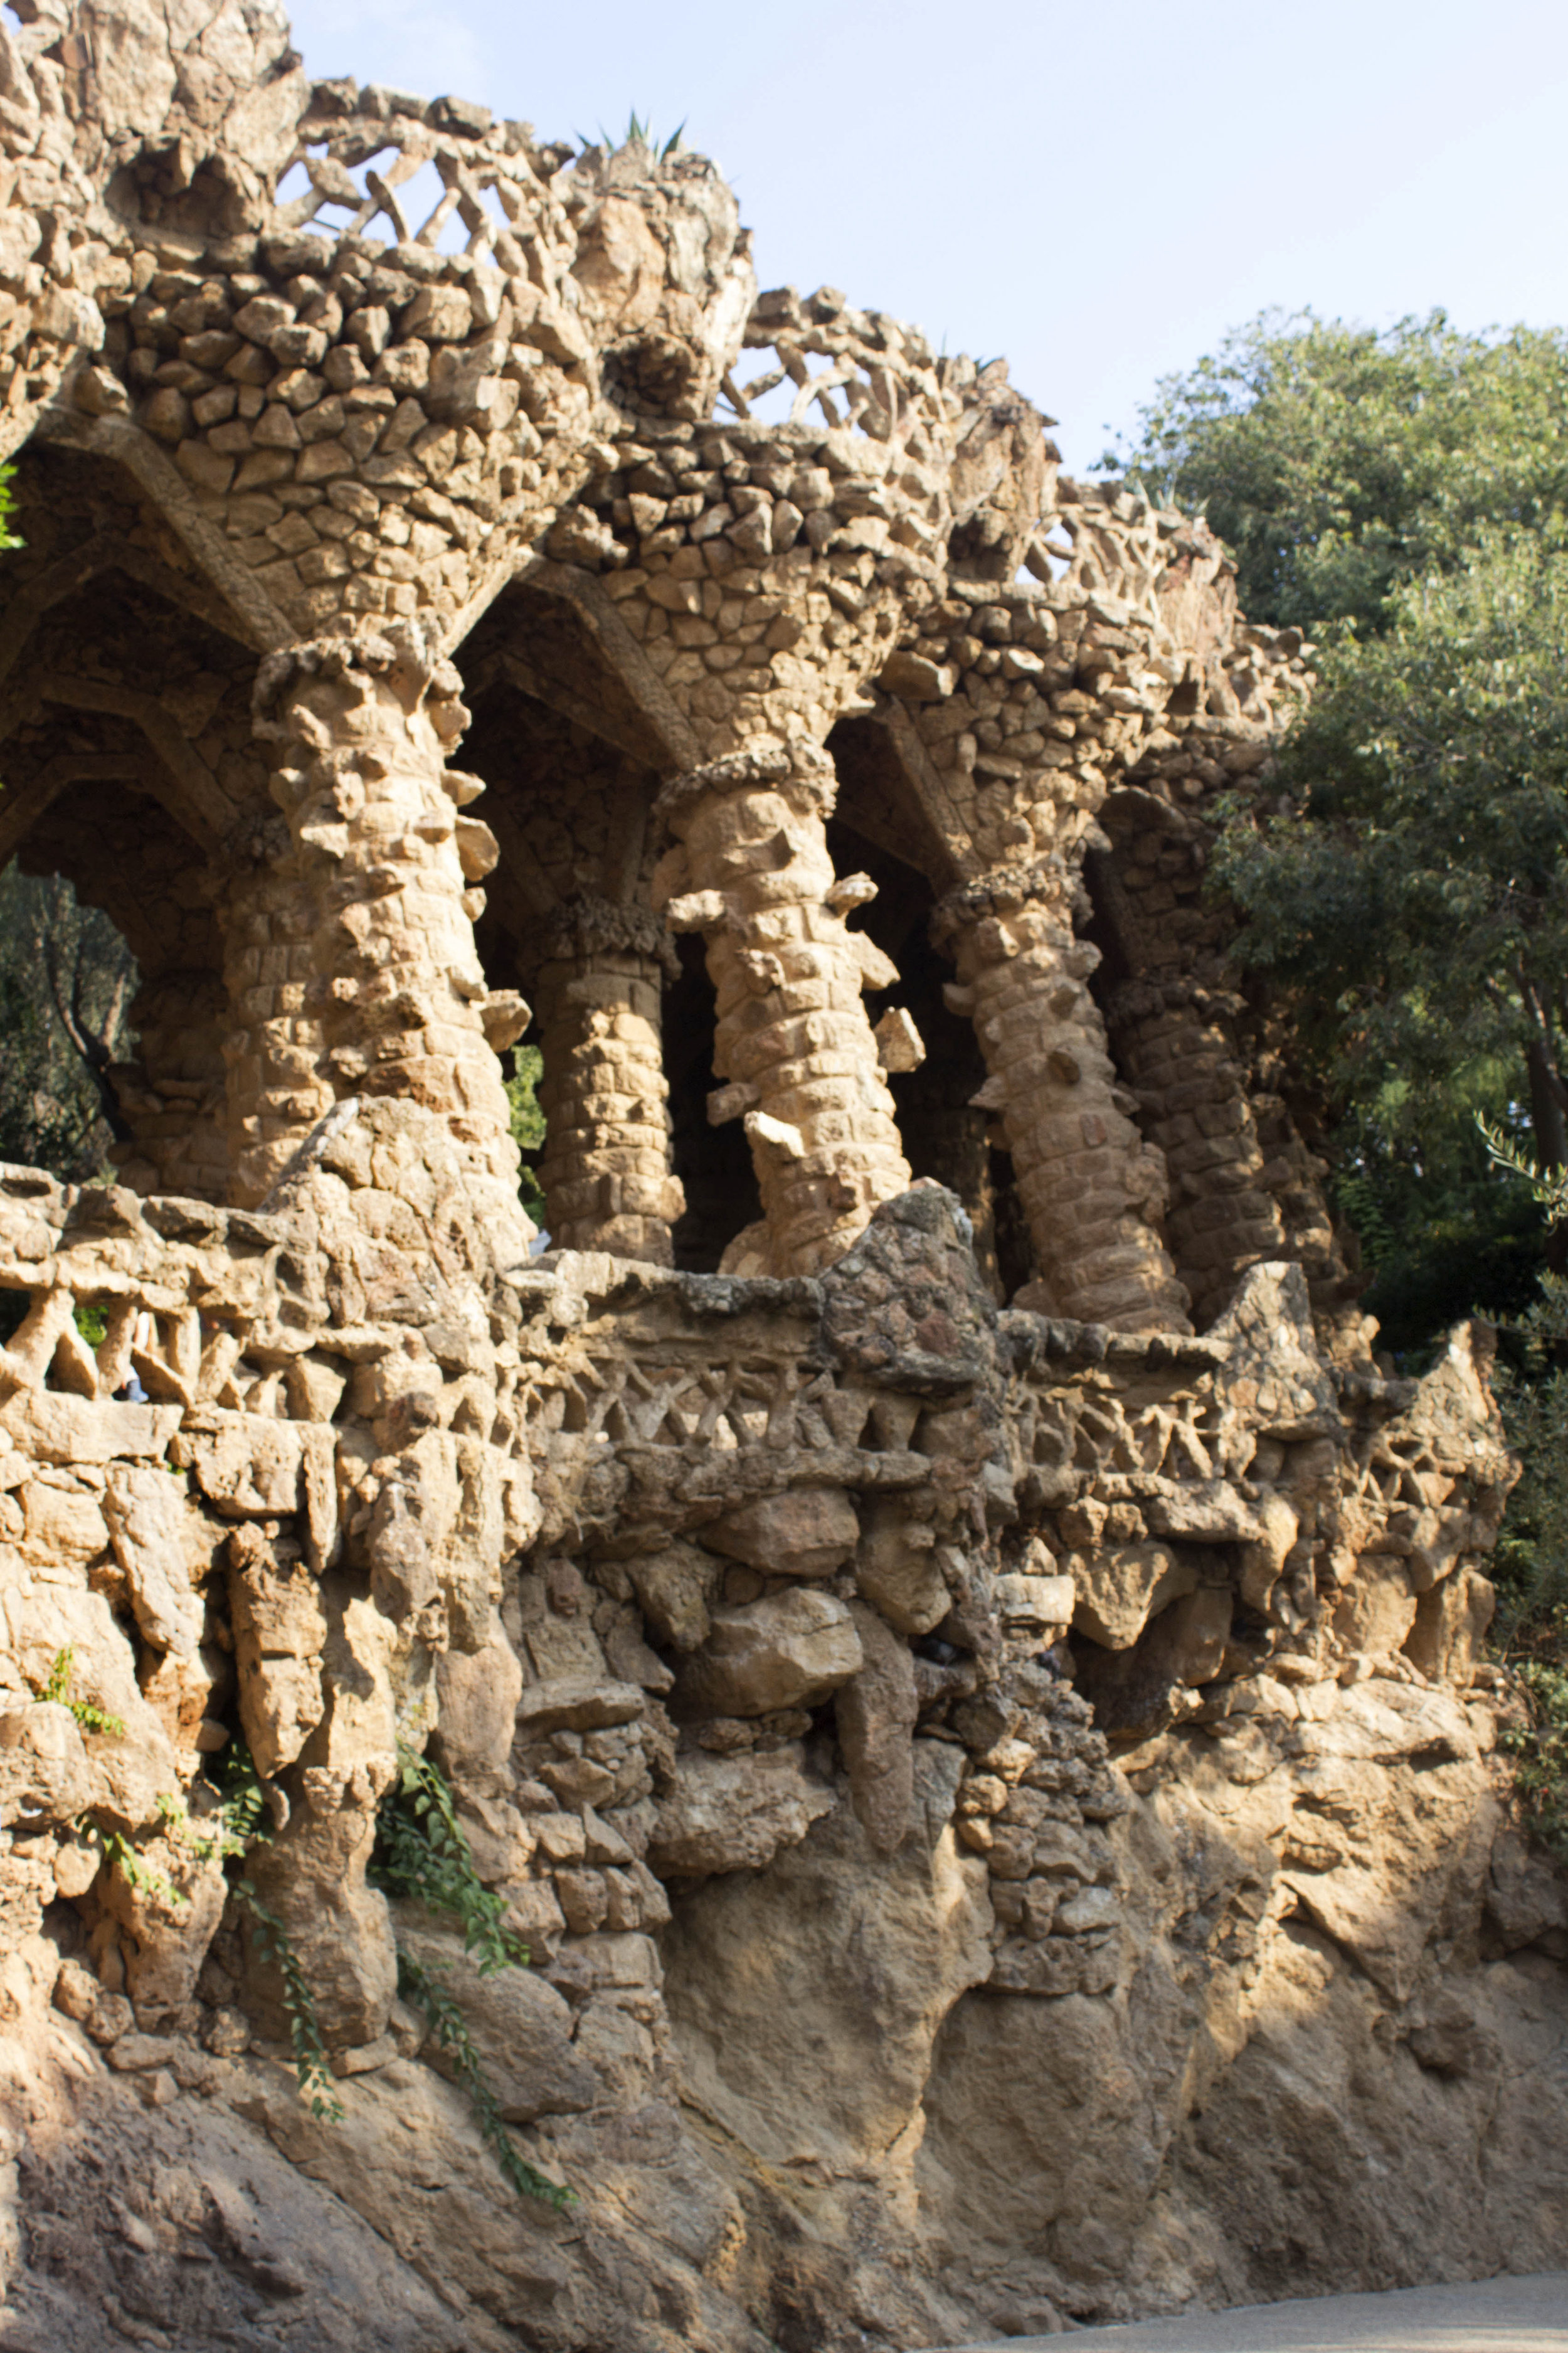 Krity S travel Barcelona Park Guell